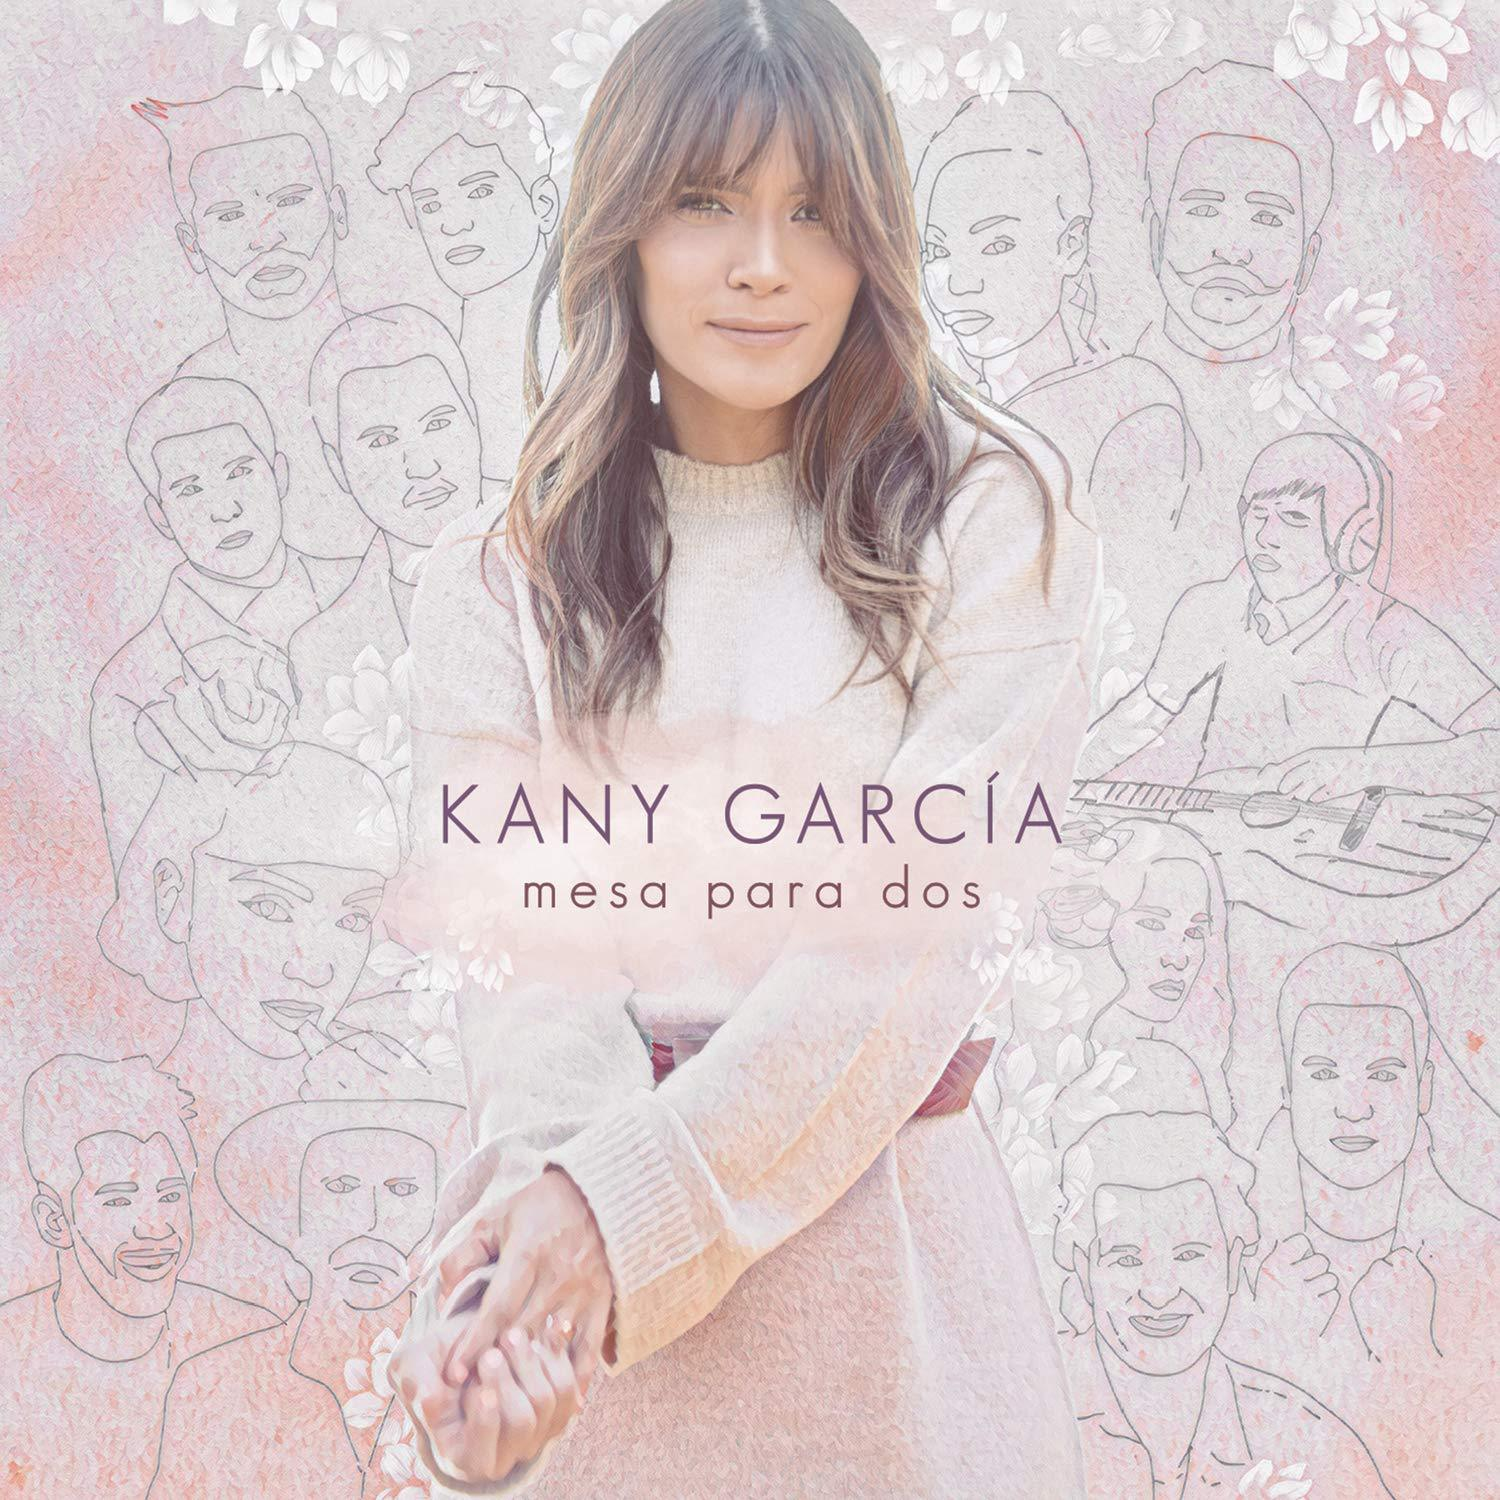 Kany Garcia - Mesa Para Dos [CD] - Urban Vinyl | Records, Headphones, and more.